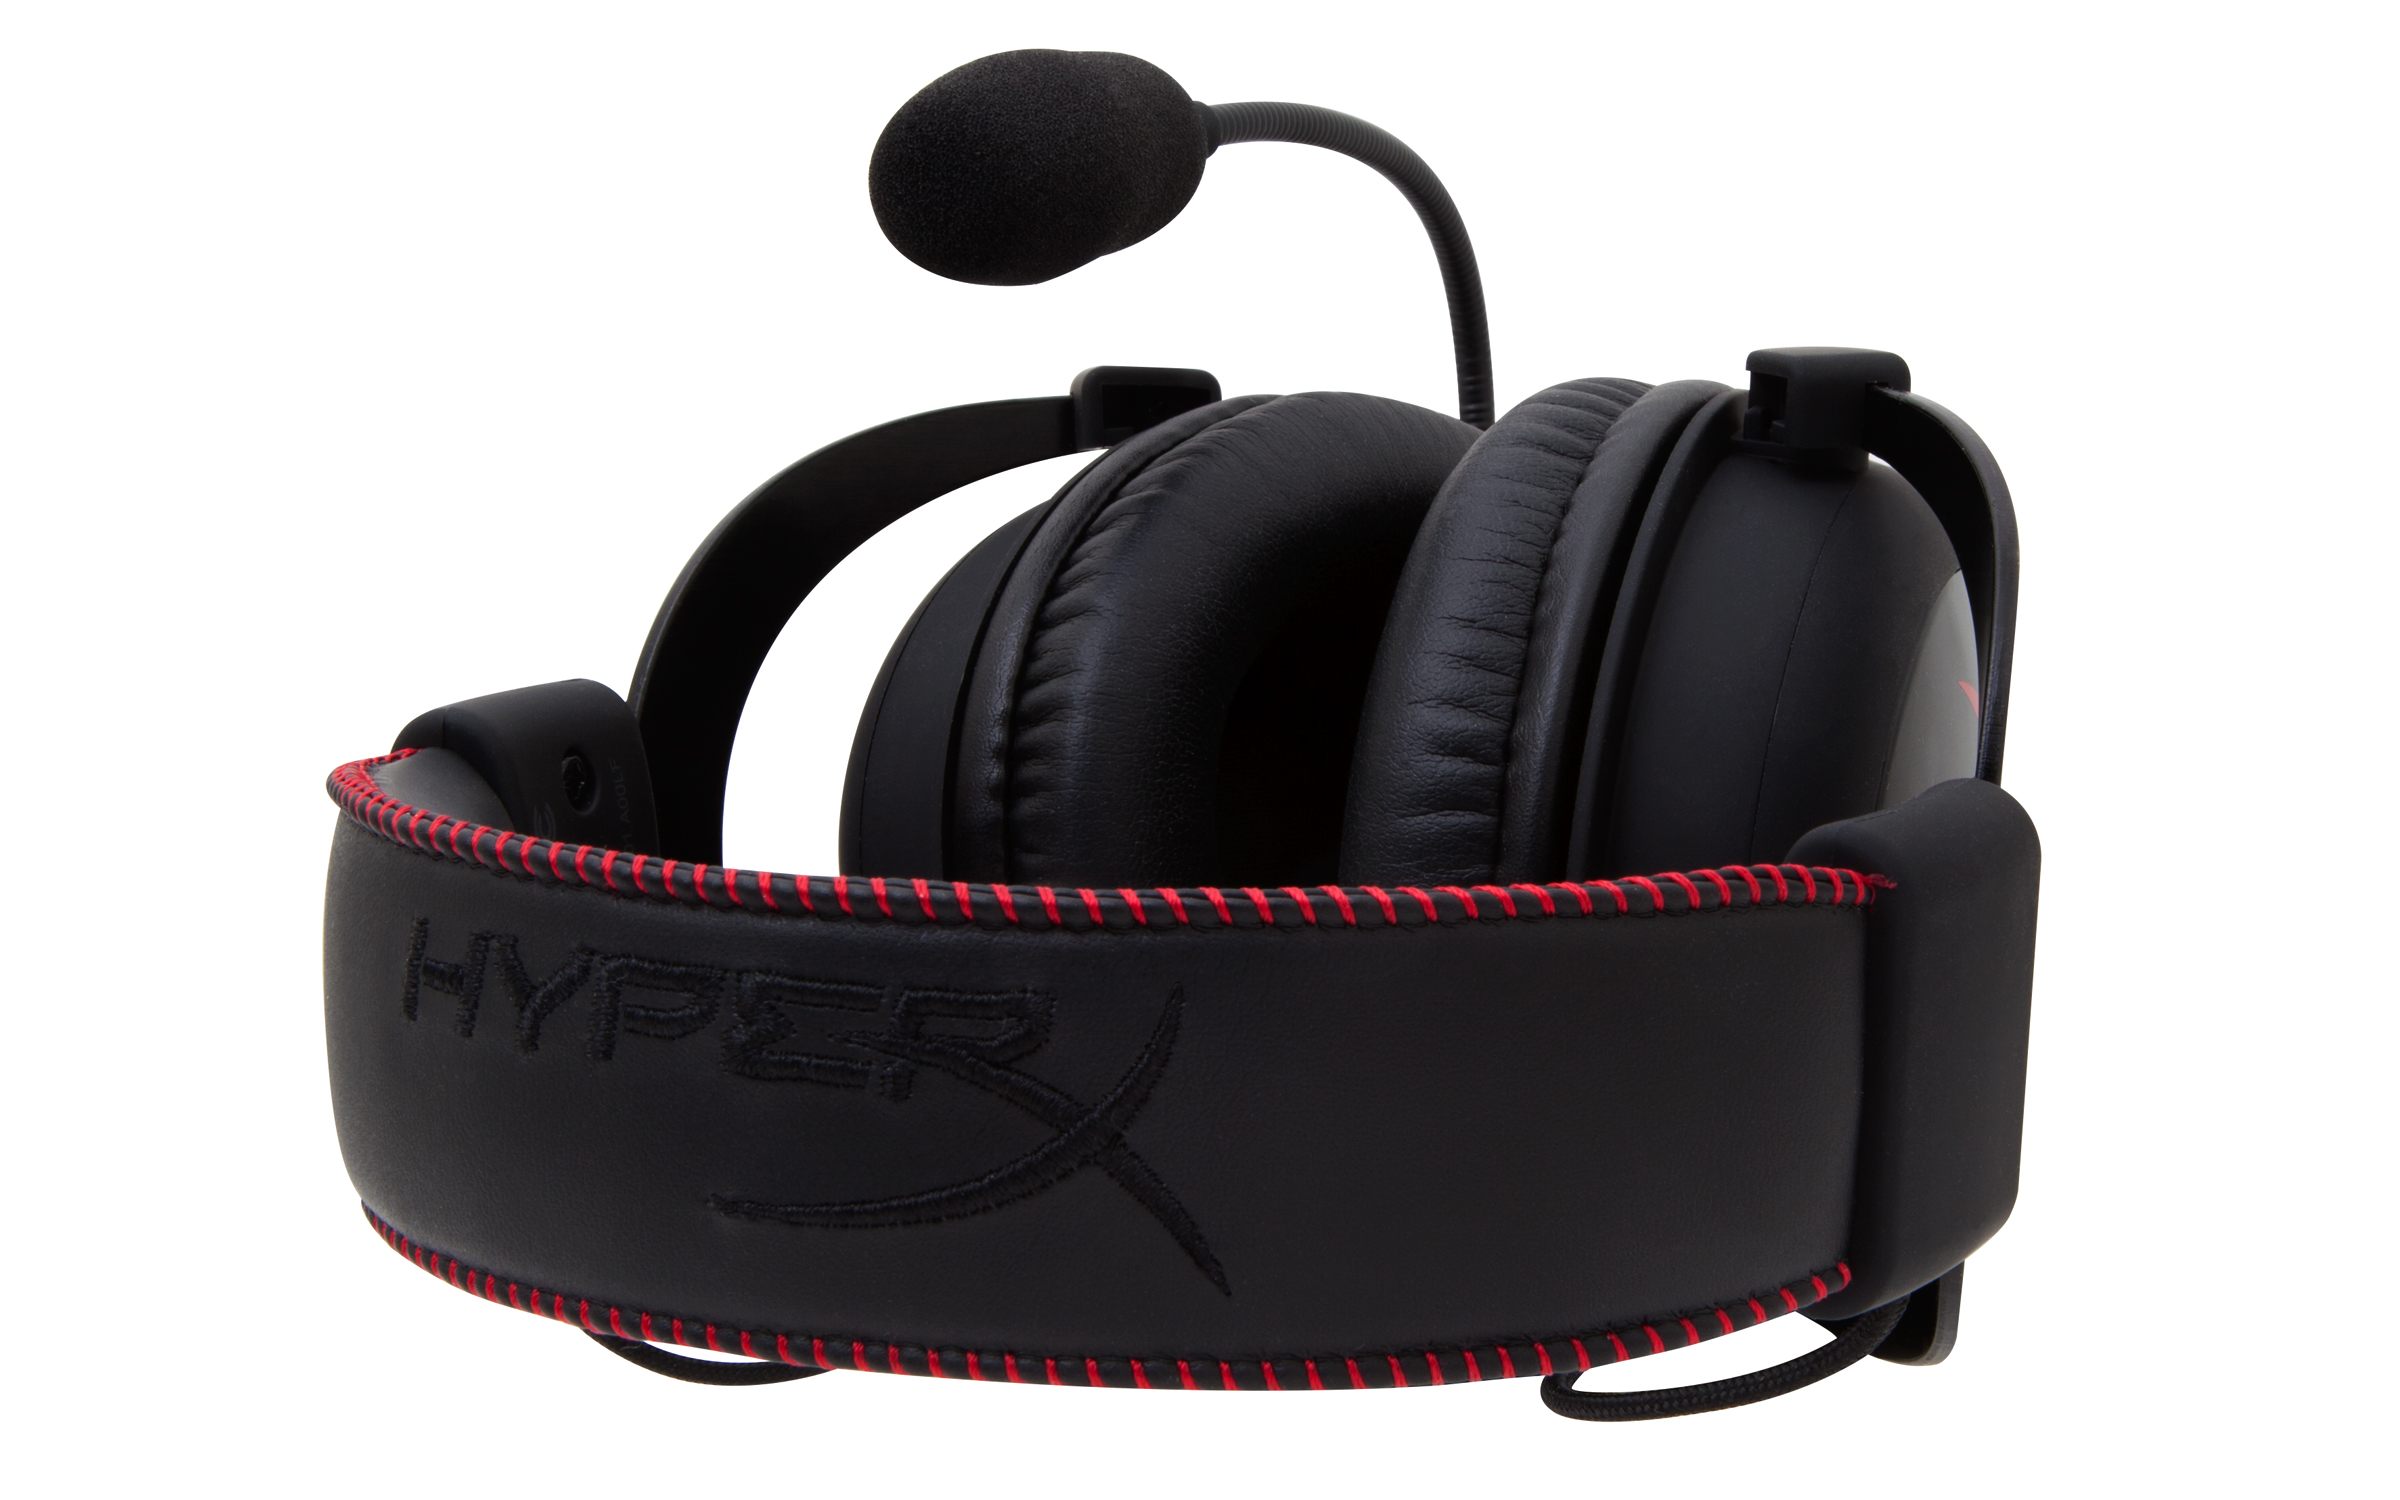 Best Gaming Headset - Kingston Hyperxcloud